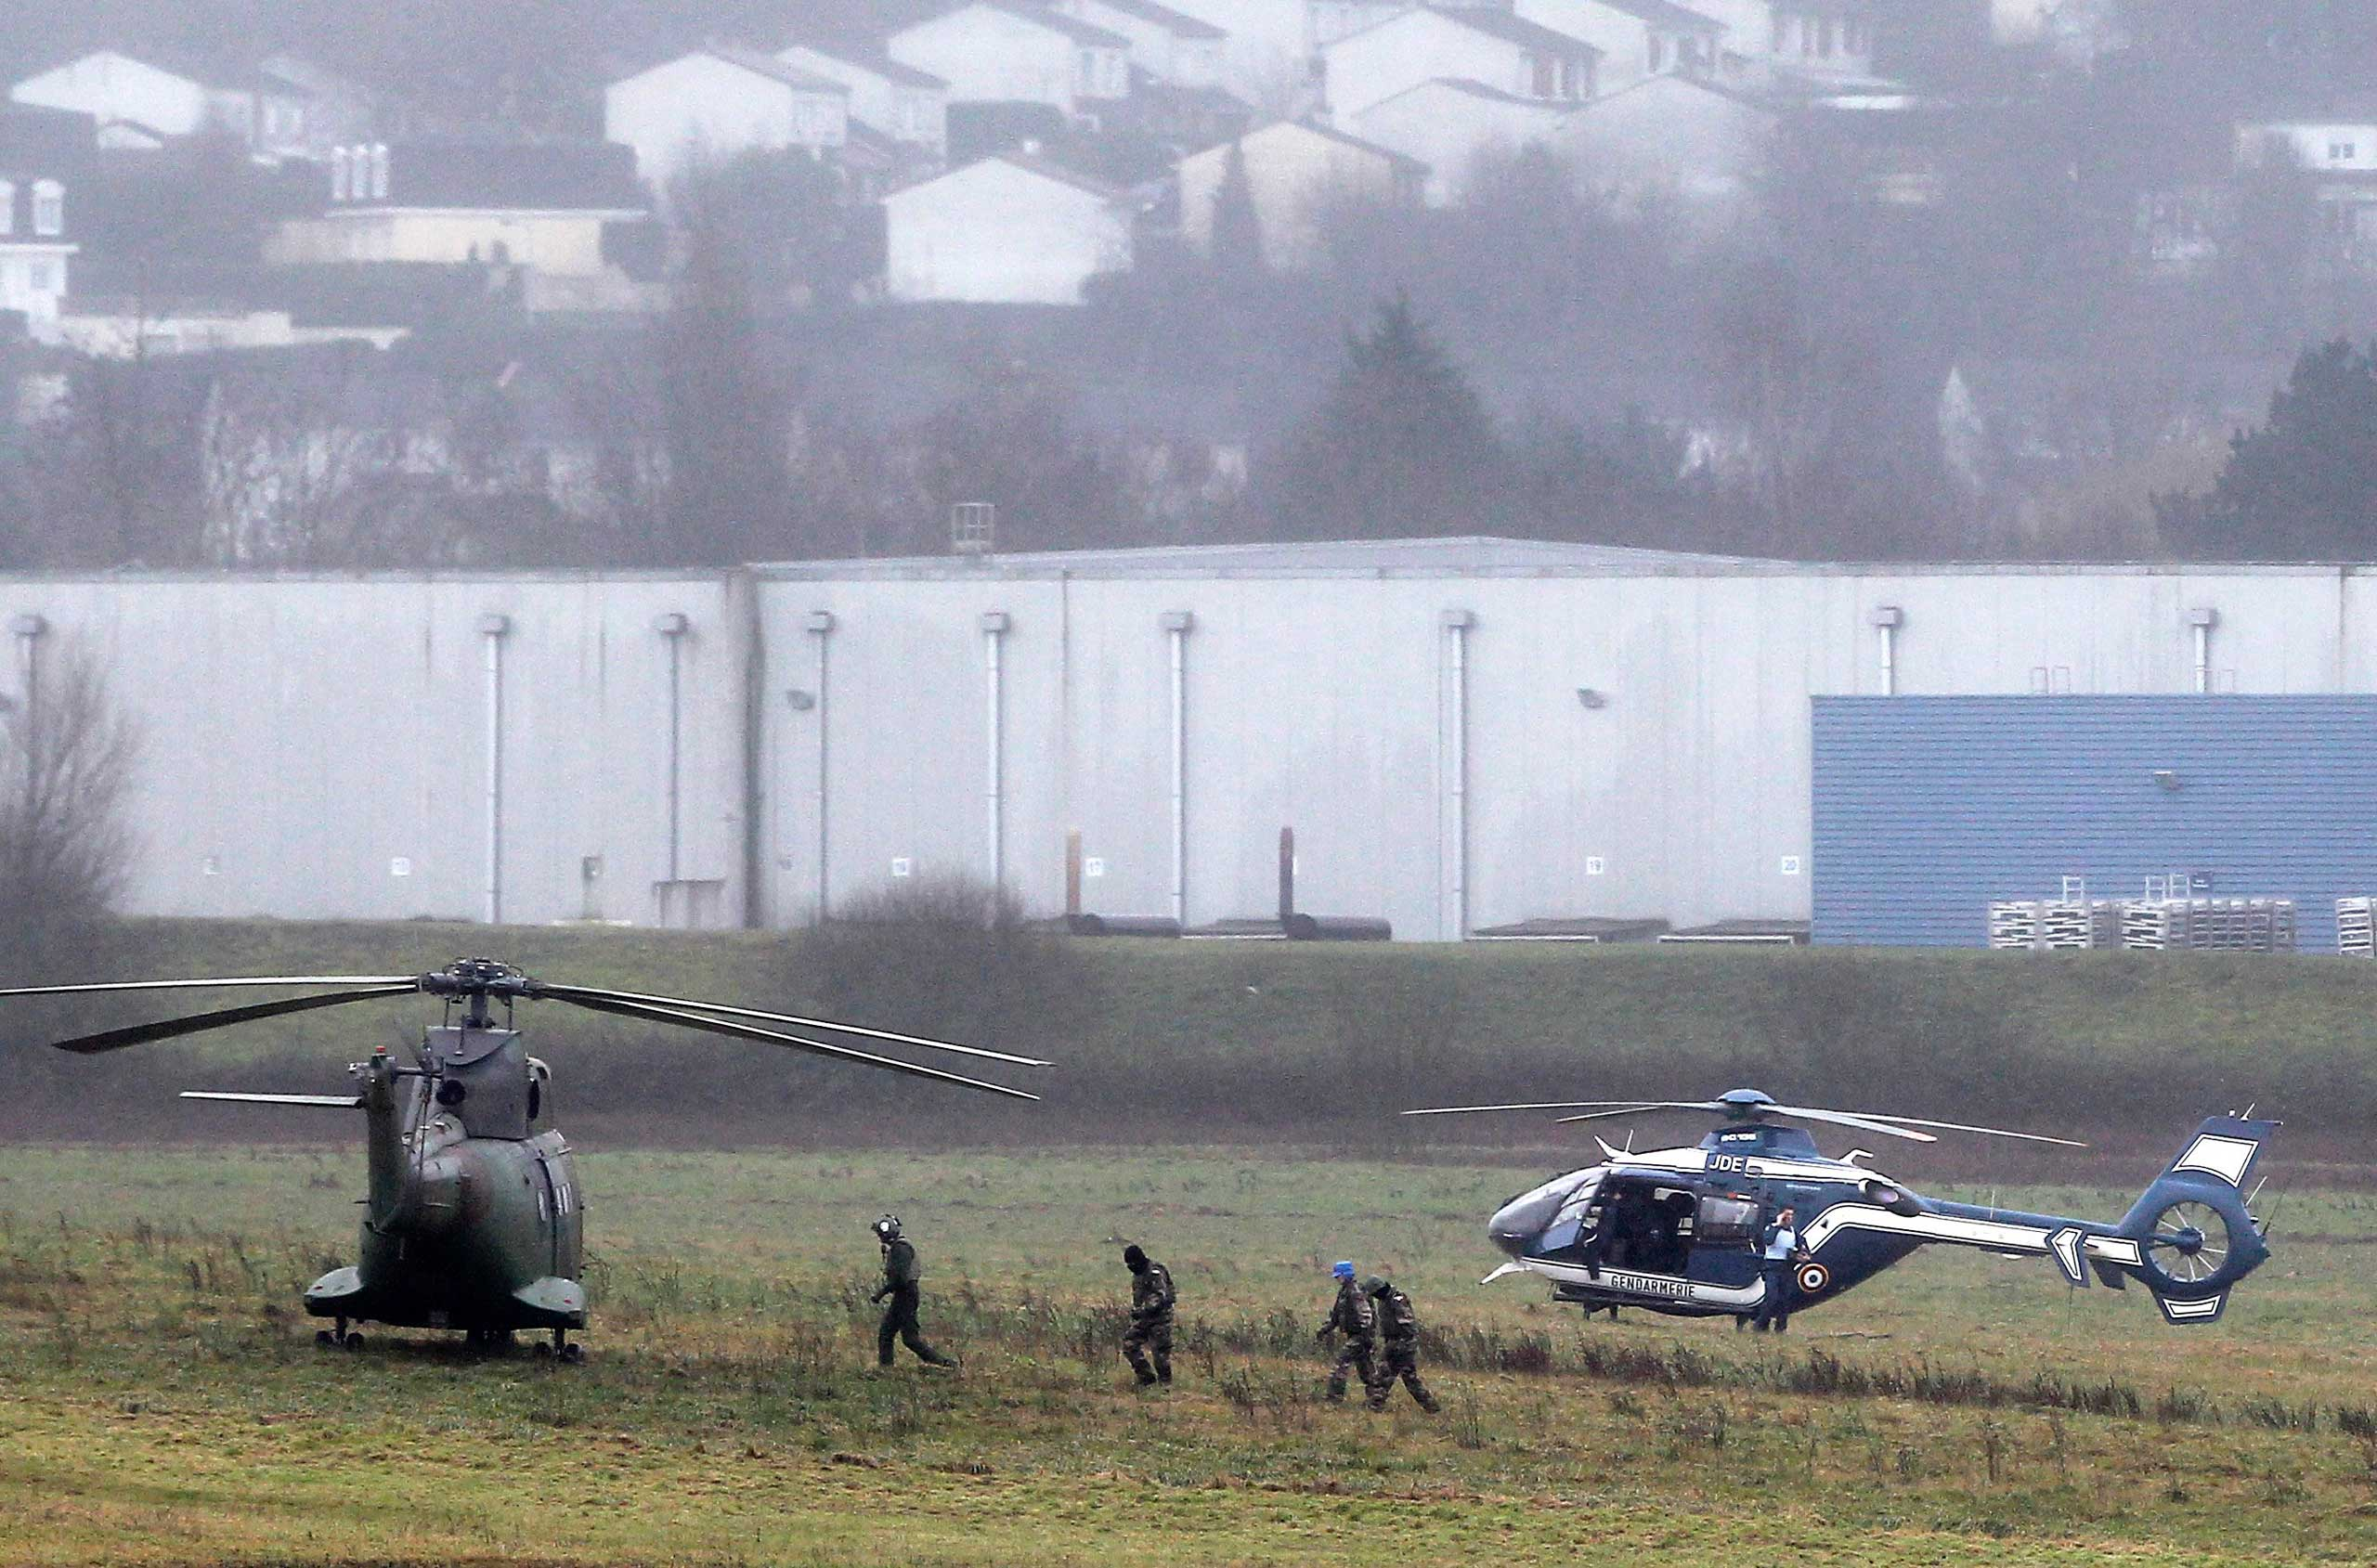 Police and army forces take positions in Dammartin-en-Goele, northeast Paris, as part of an operation to seize two heavily armed suspects, Jan. 9, 2015.